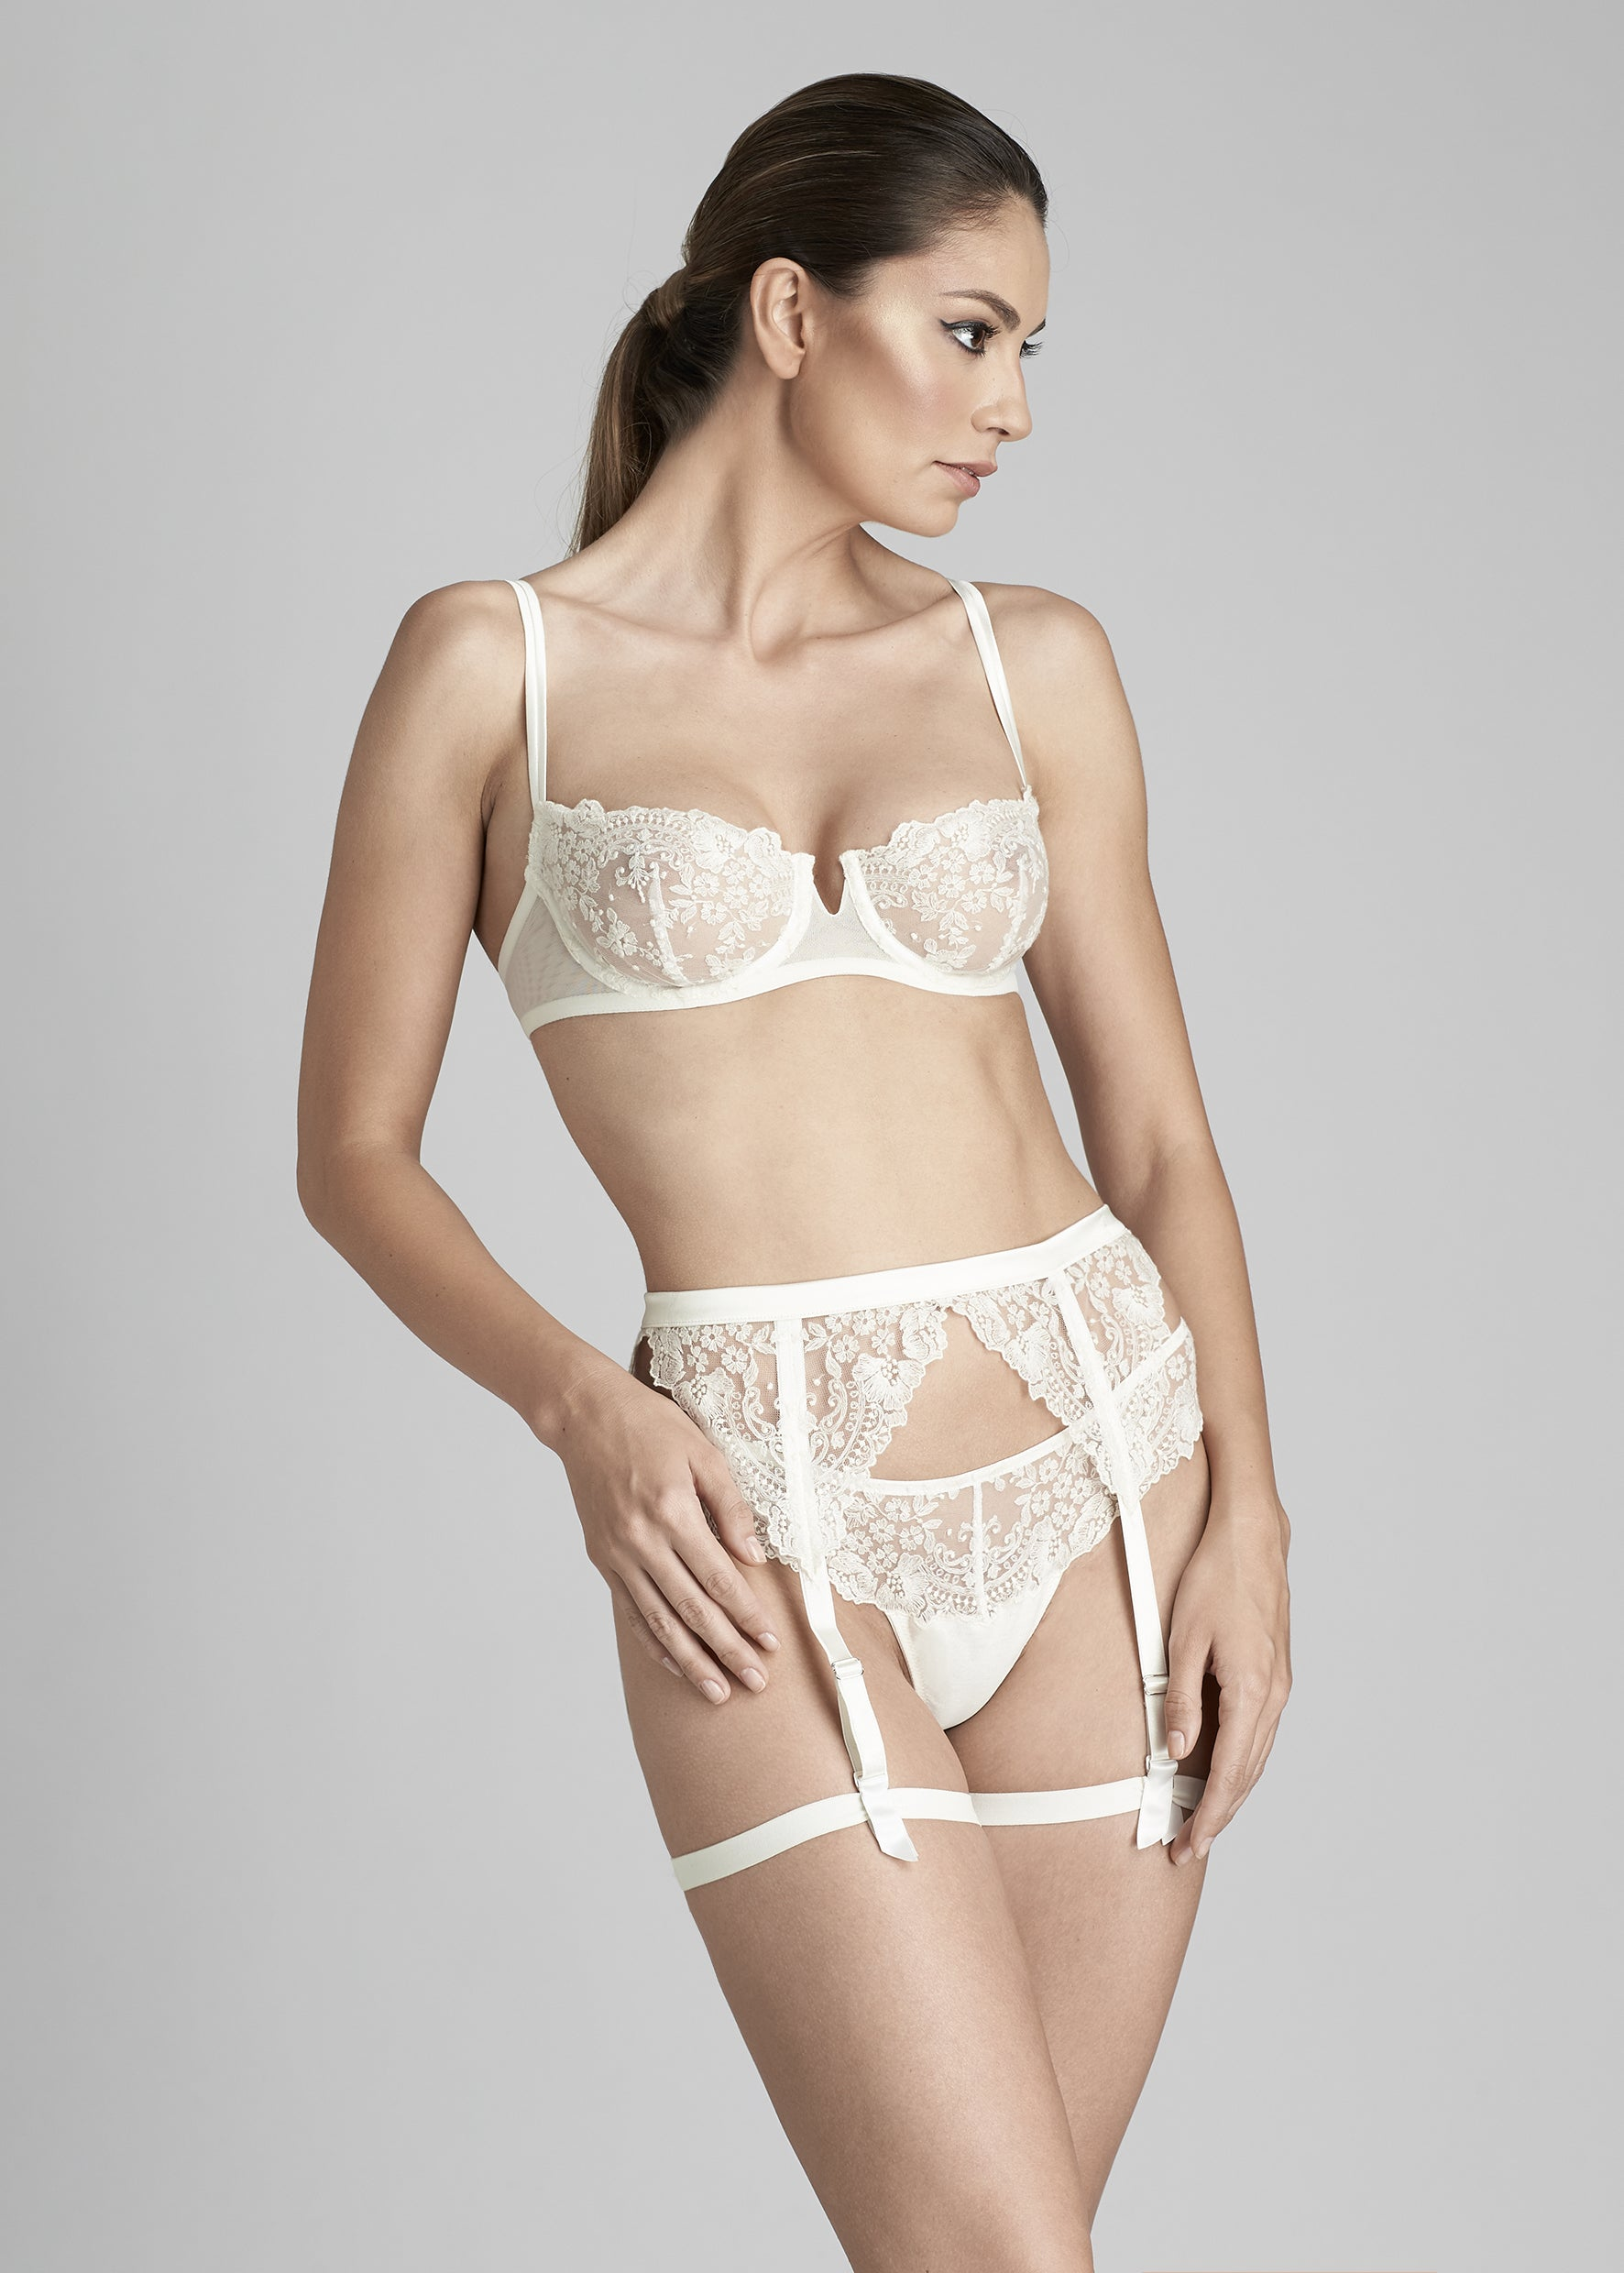 I.D. Sarrieri lace underwired bra and suspender belt in Pearled Ivory